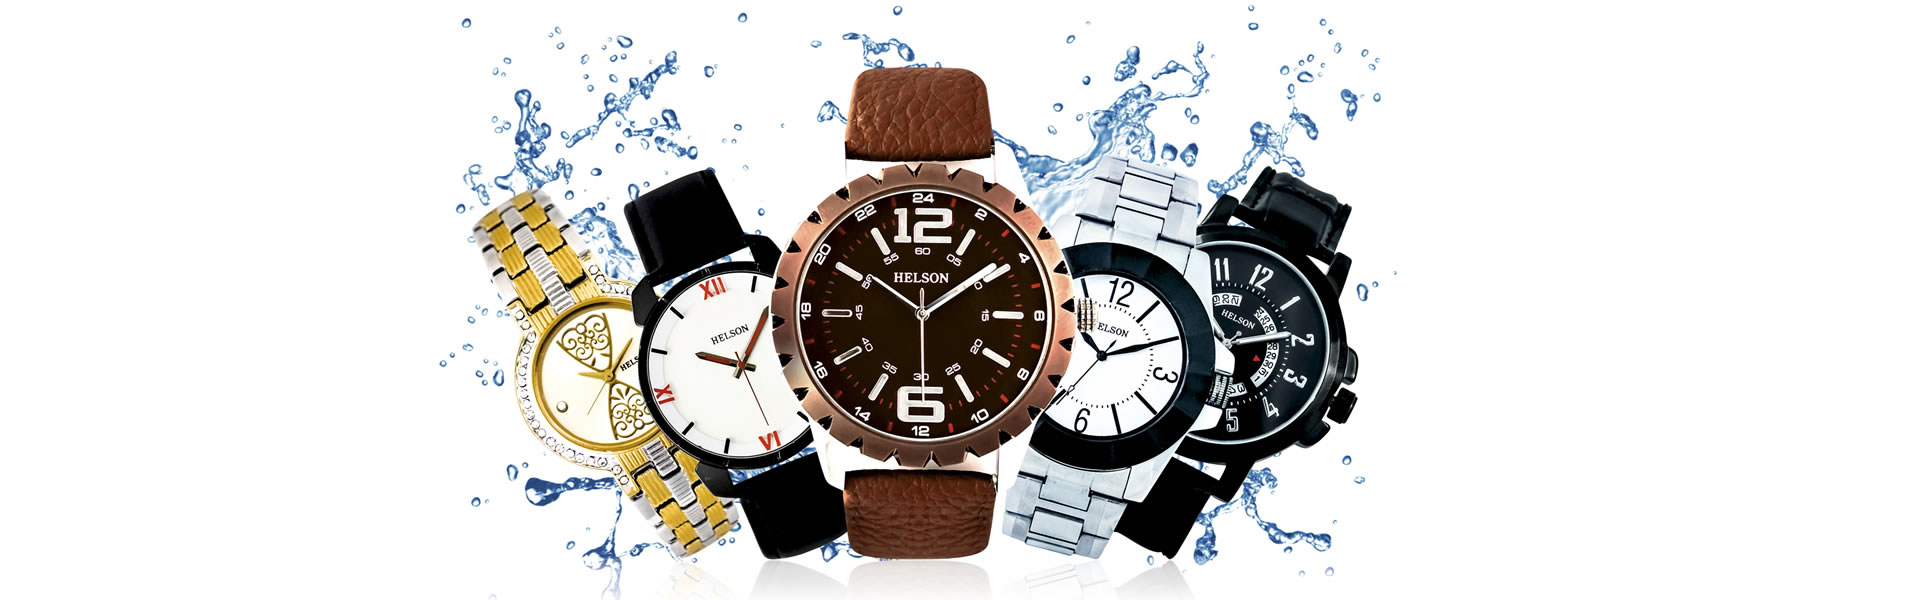 Helson Watches - Ahmedabad